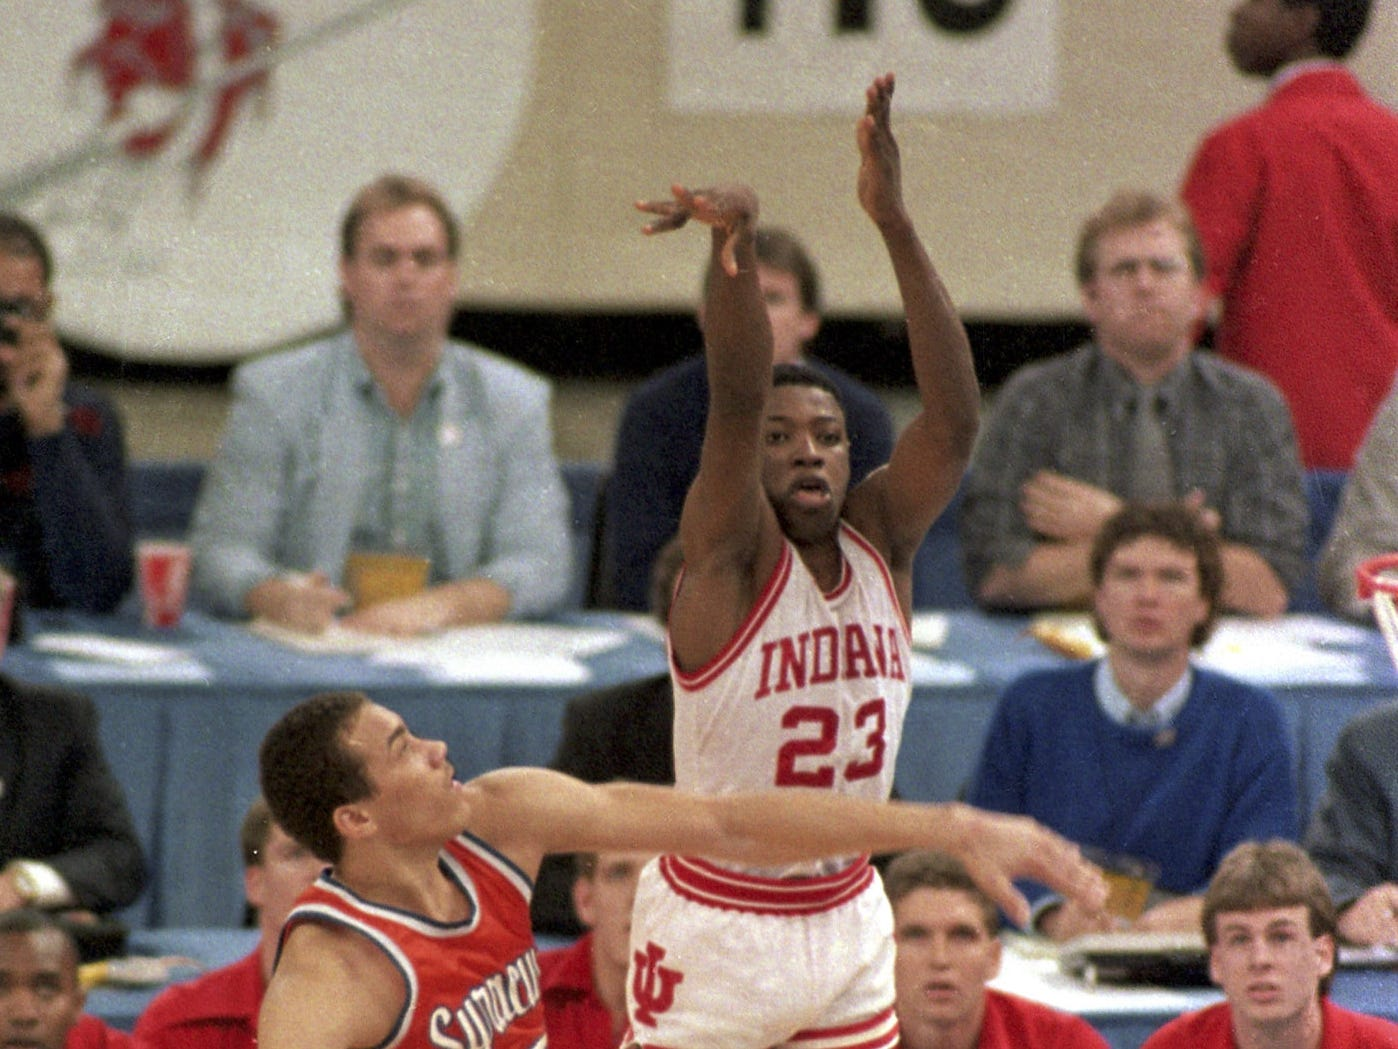 Indiana's Keith Smart (23) fires a shot past Syracuse's Howard Triche for a basket putting Indiana ahead by one point in the final seconds of the NCAA Championship game in New Orleans La. in March 30 1987.